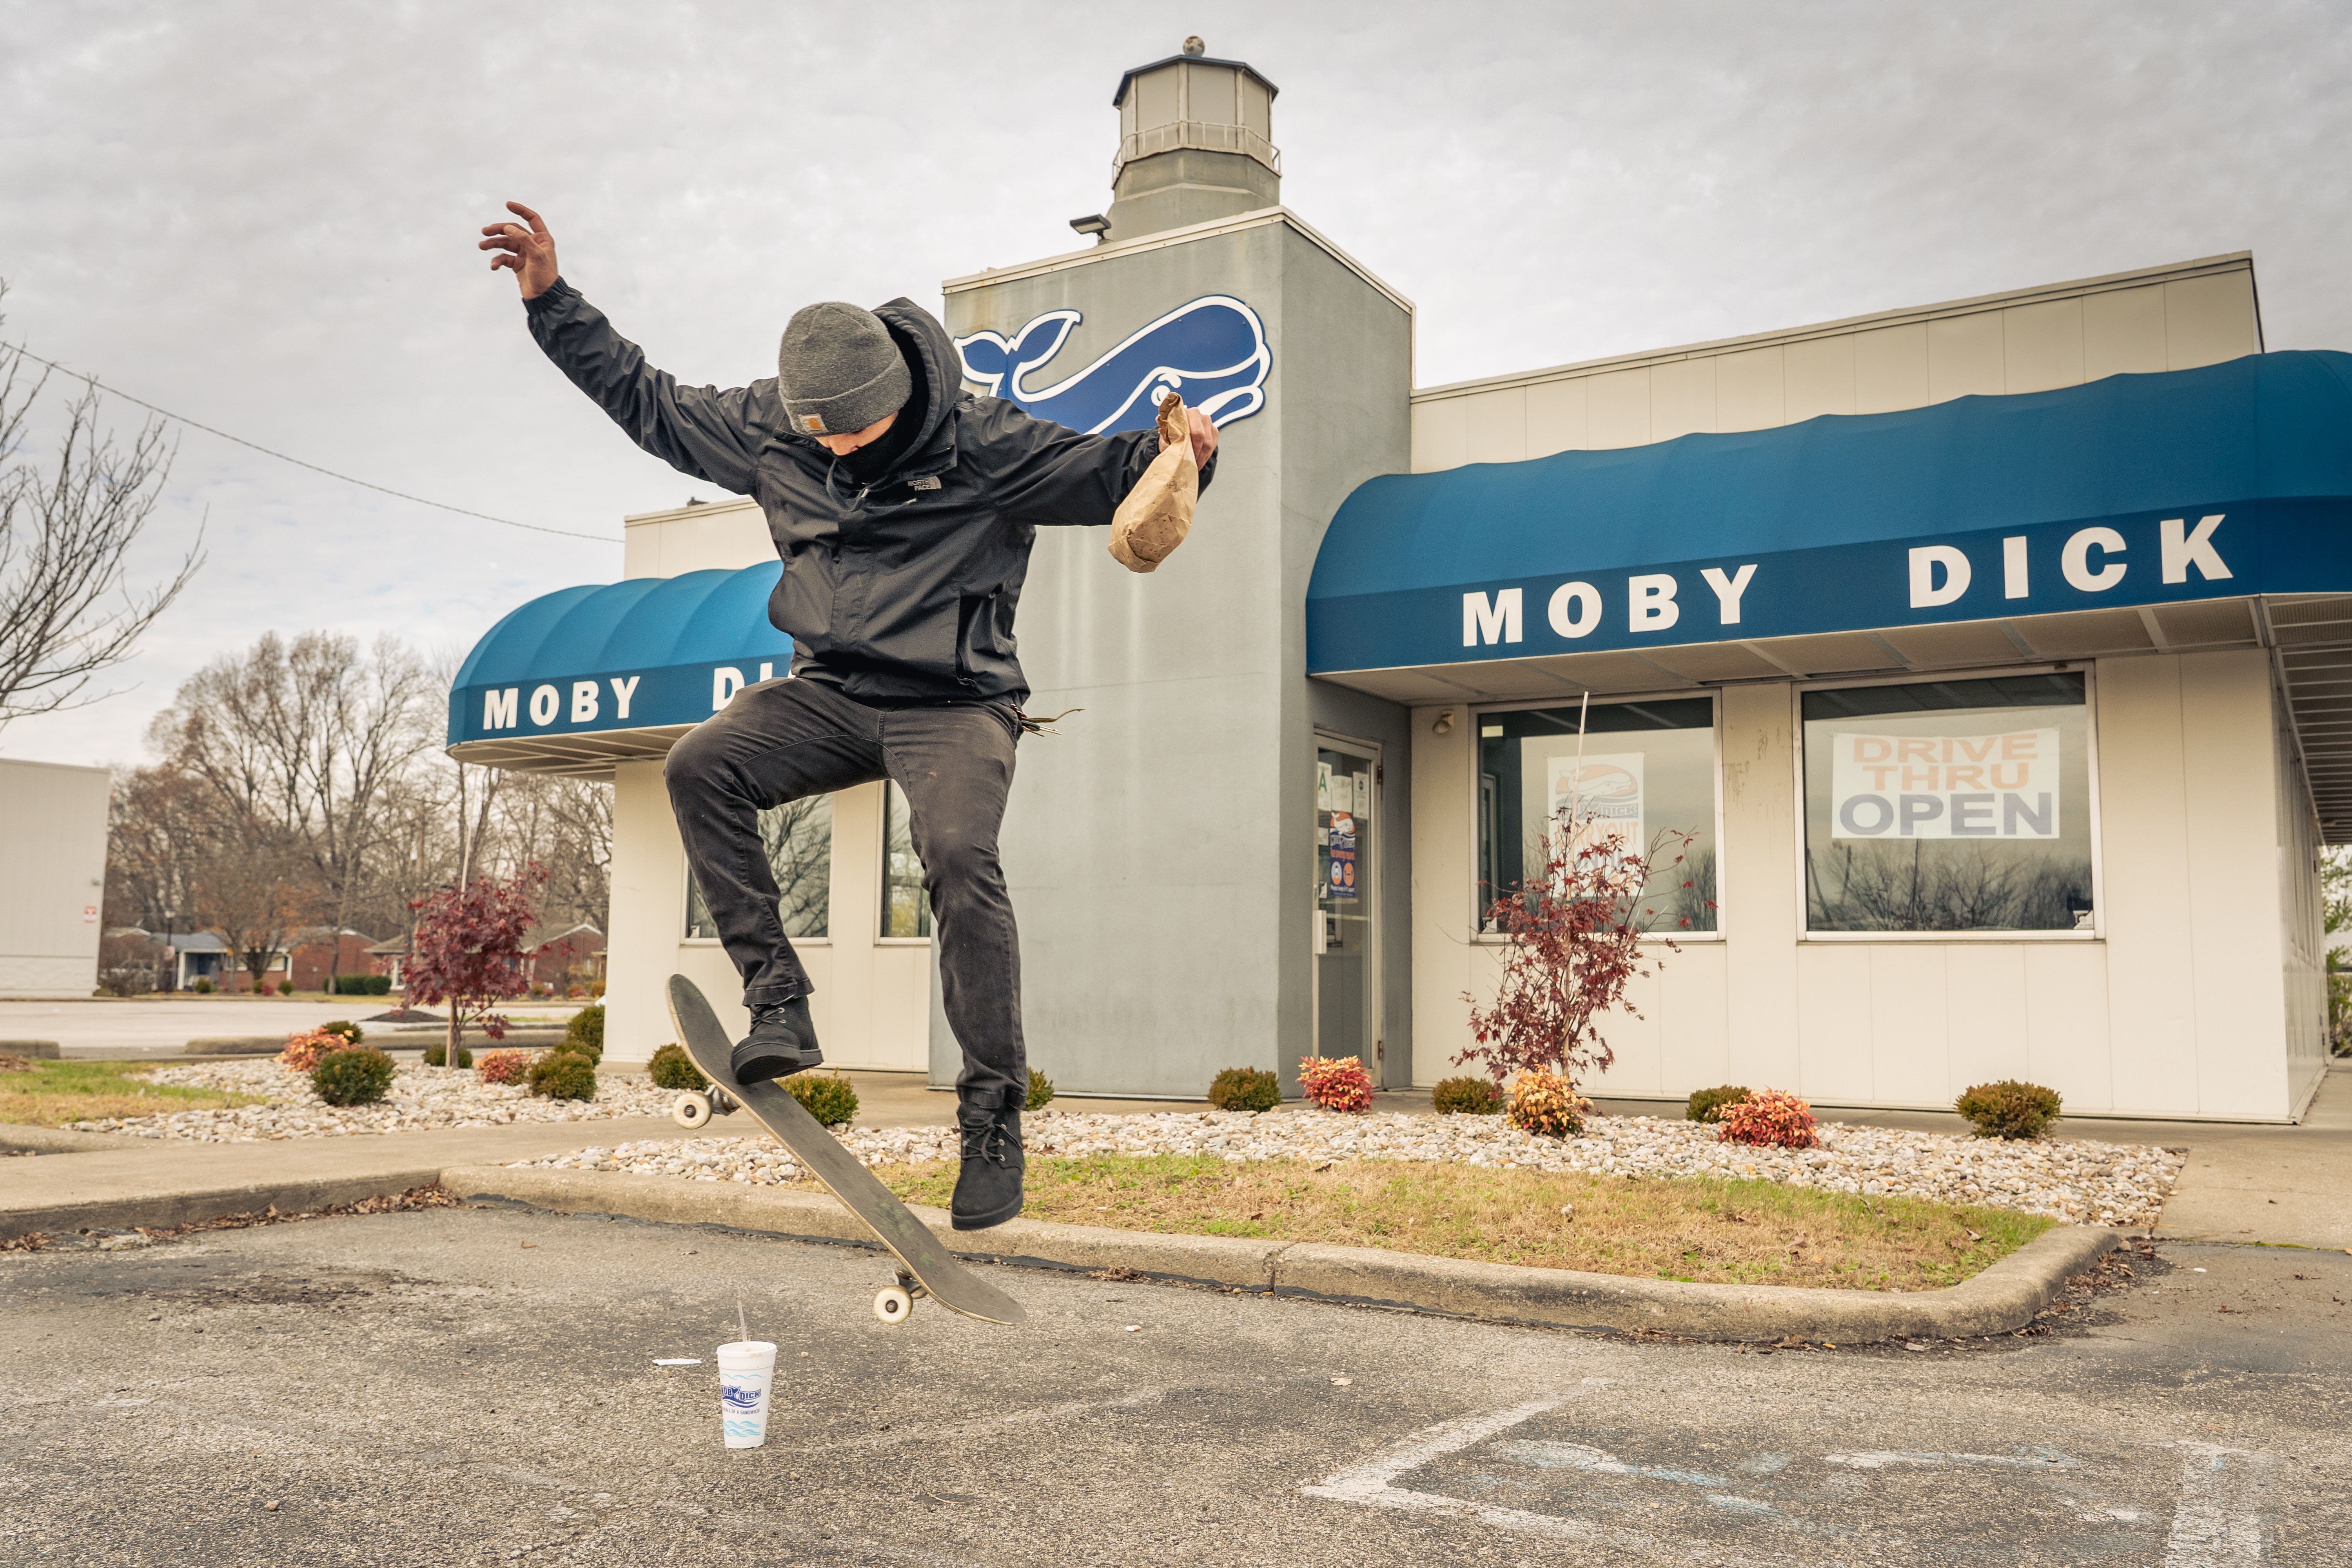 Skater jumps over a cup in parking lot